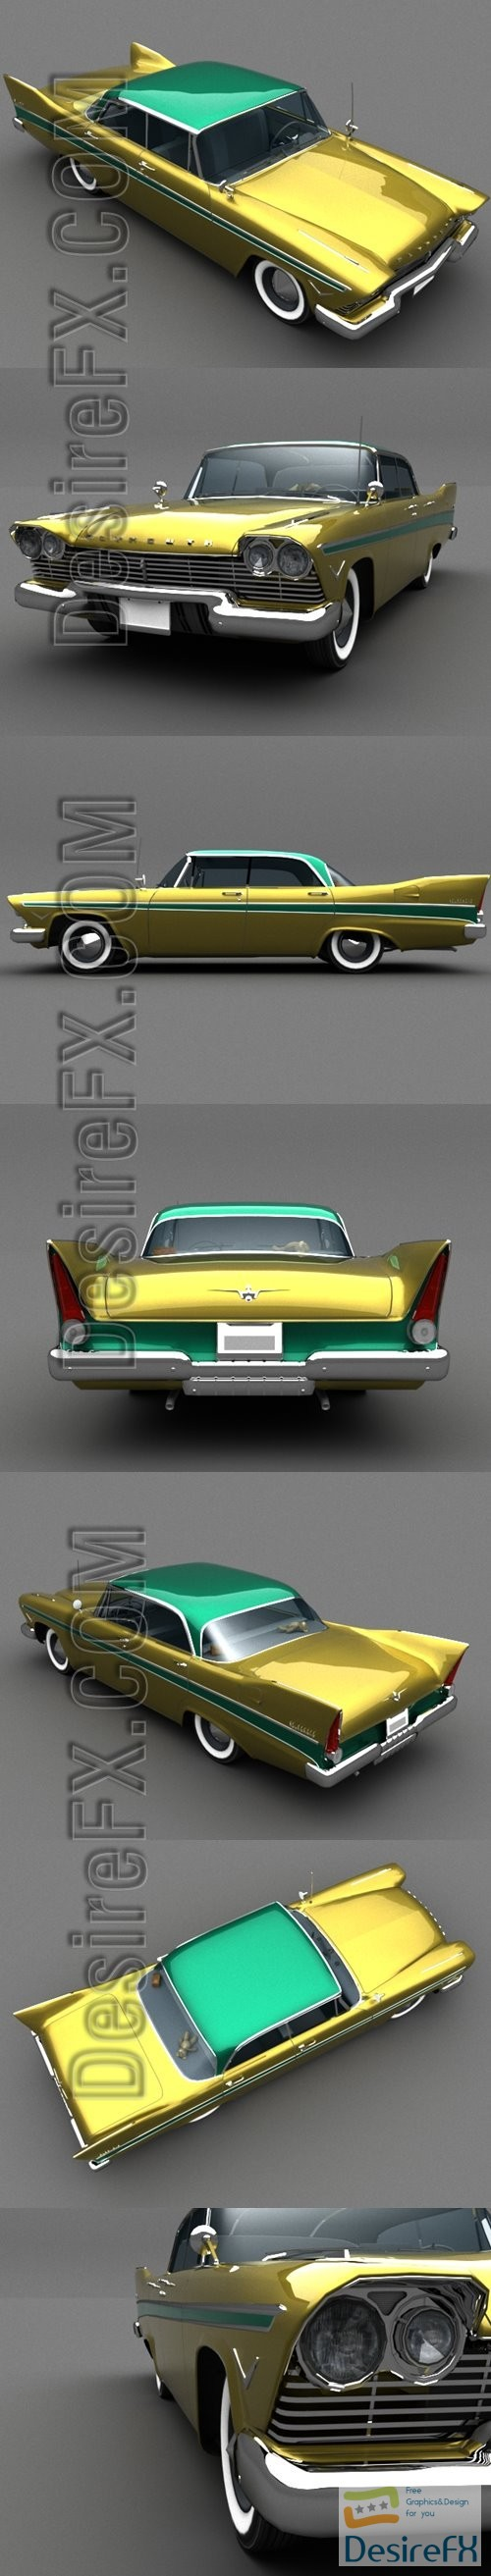 Plymouth Belvedere 1957 3D Model